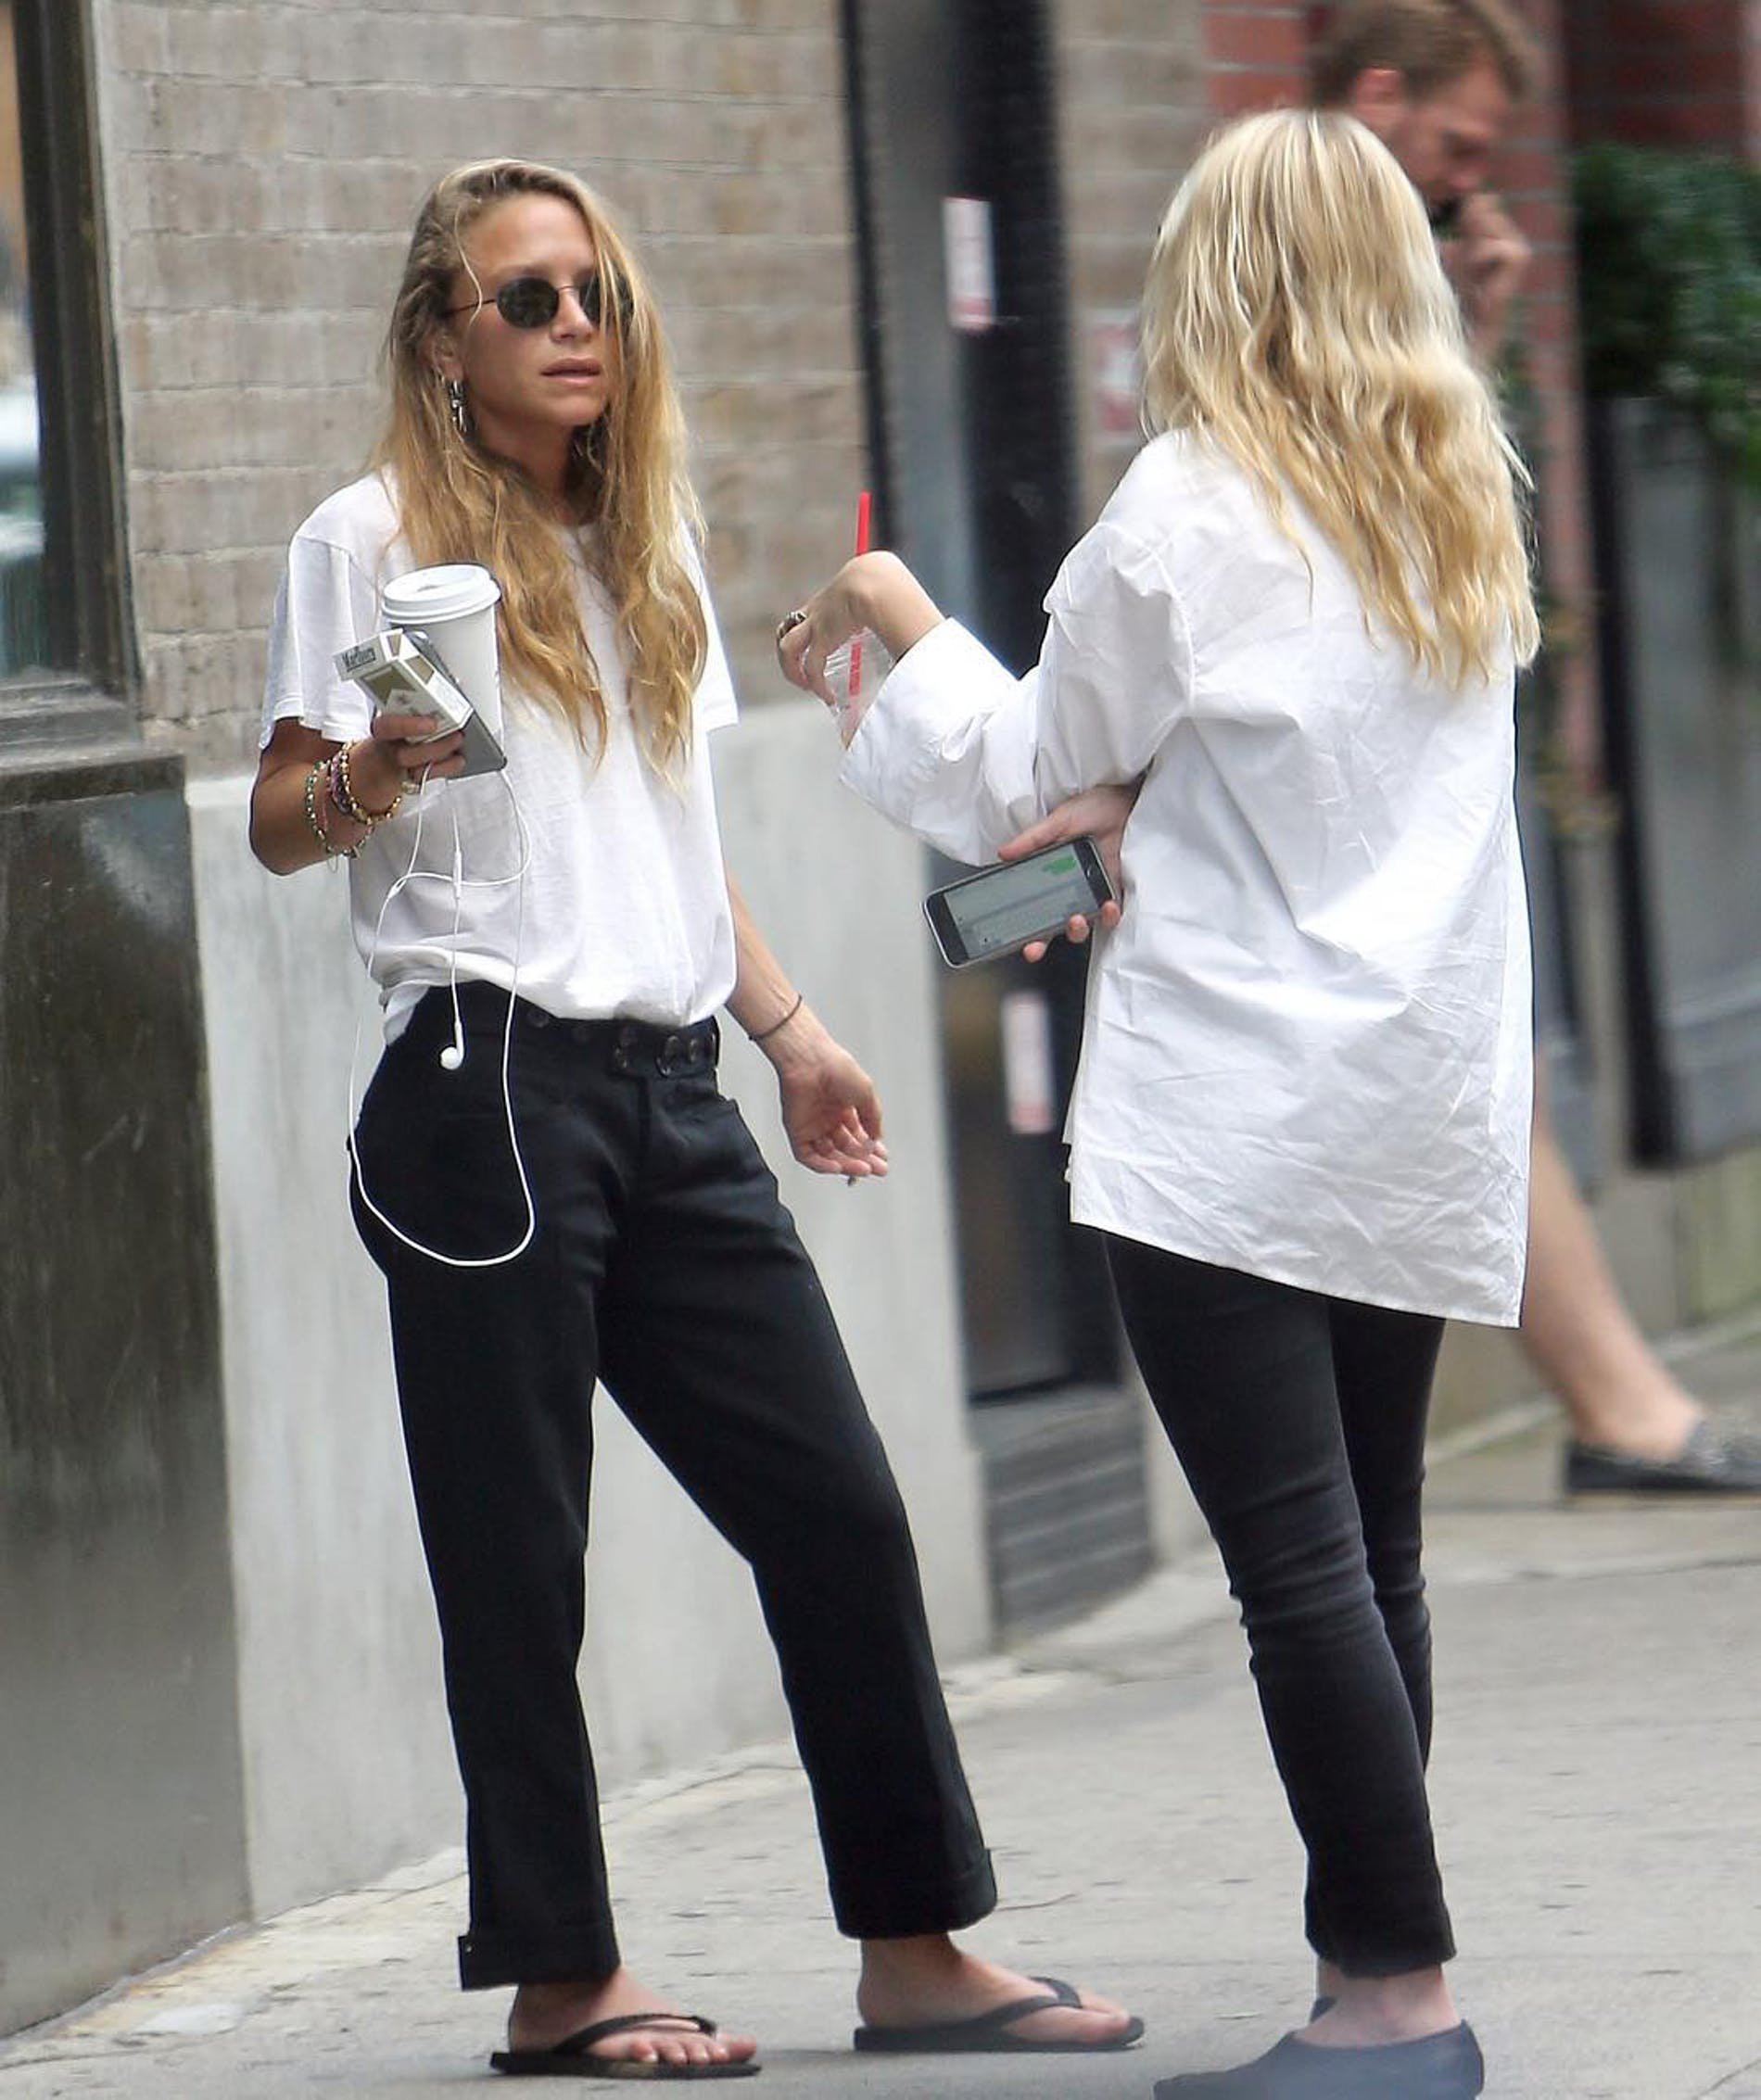 What Makes Olsen Sisters Style Cool